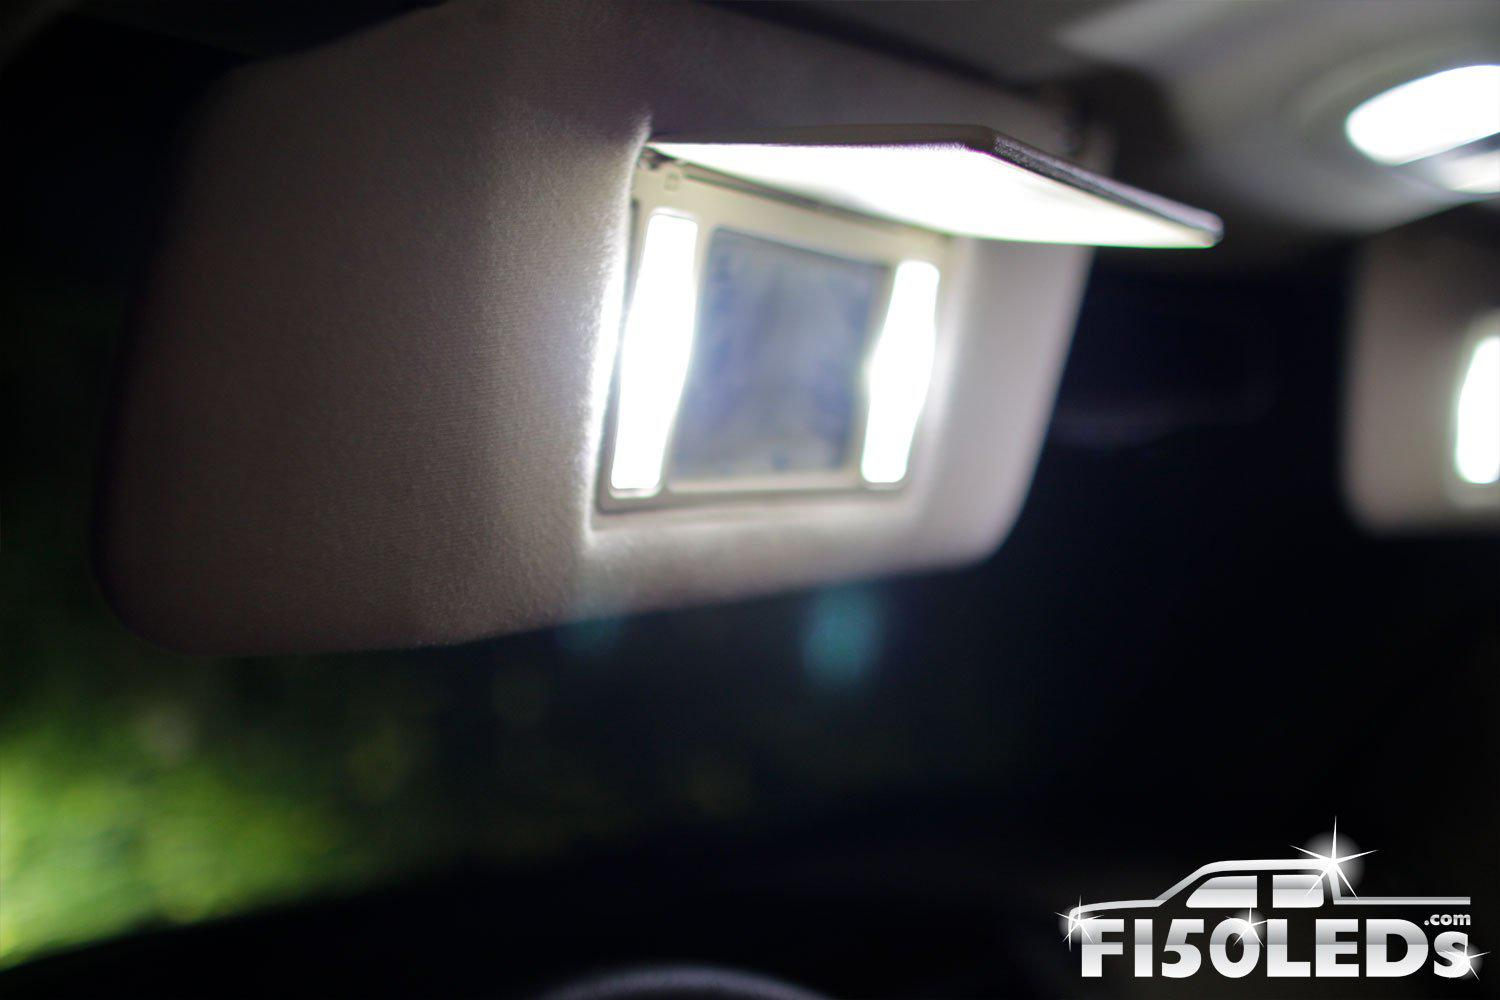 2010-14 F150 RAPTOR LED Vanity Mirror LED Lights-2010-14 F150 RAPTOR LEDS-F150LEDs.com